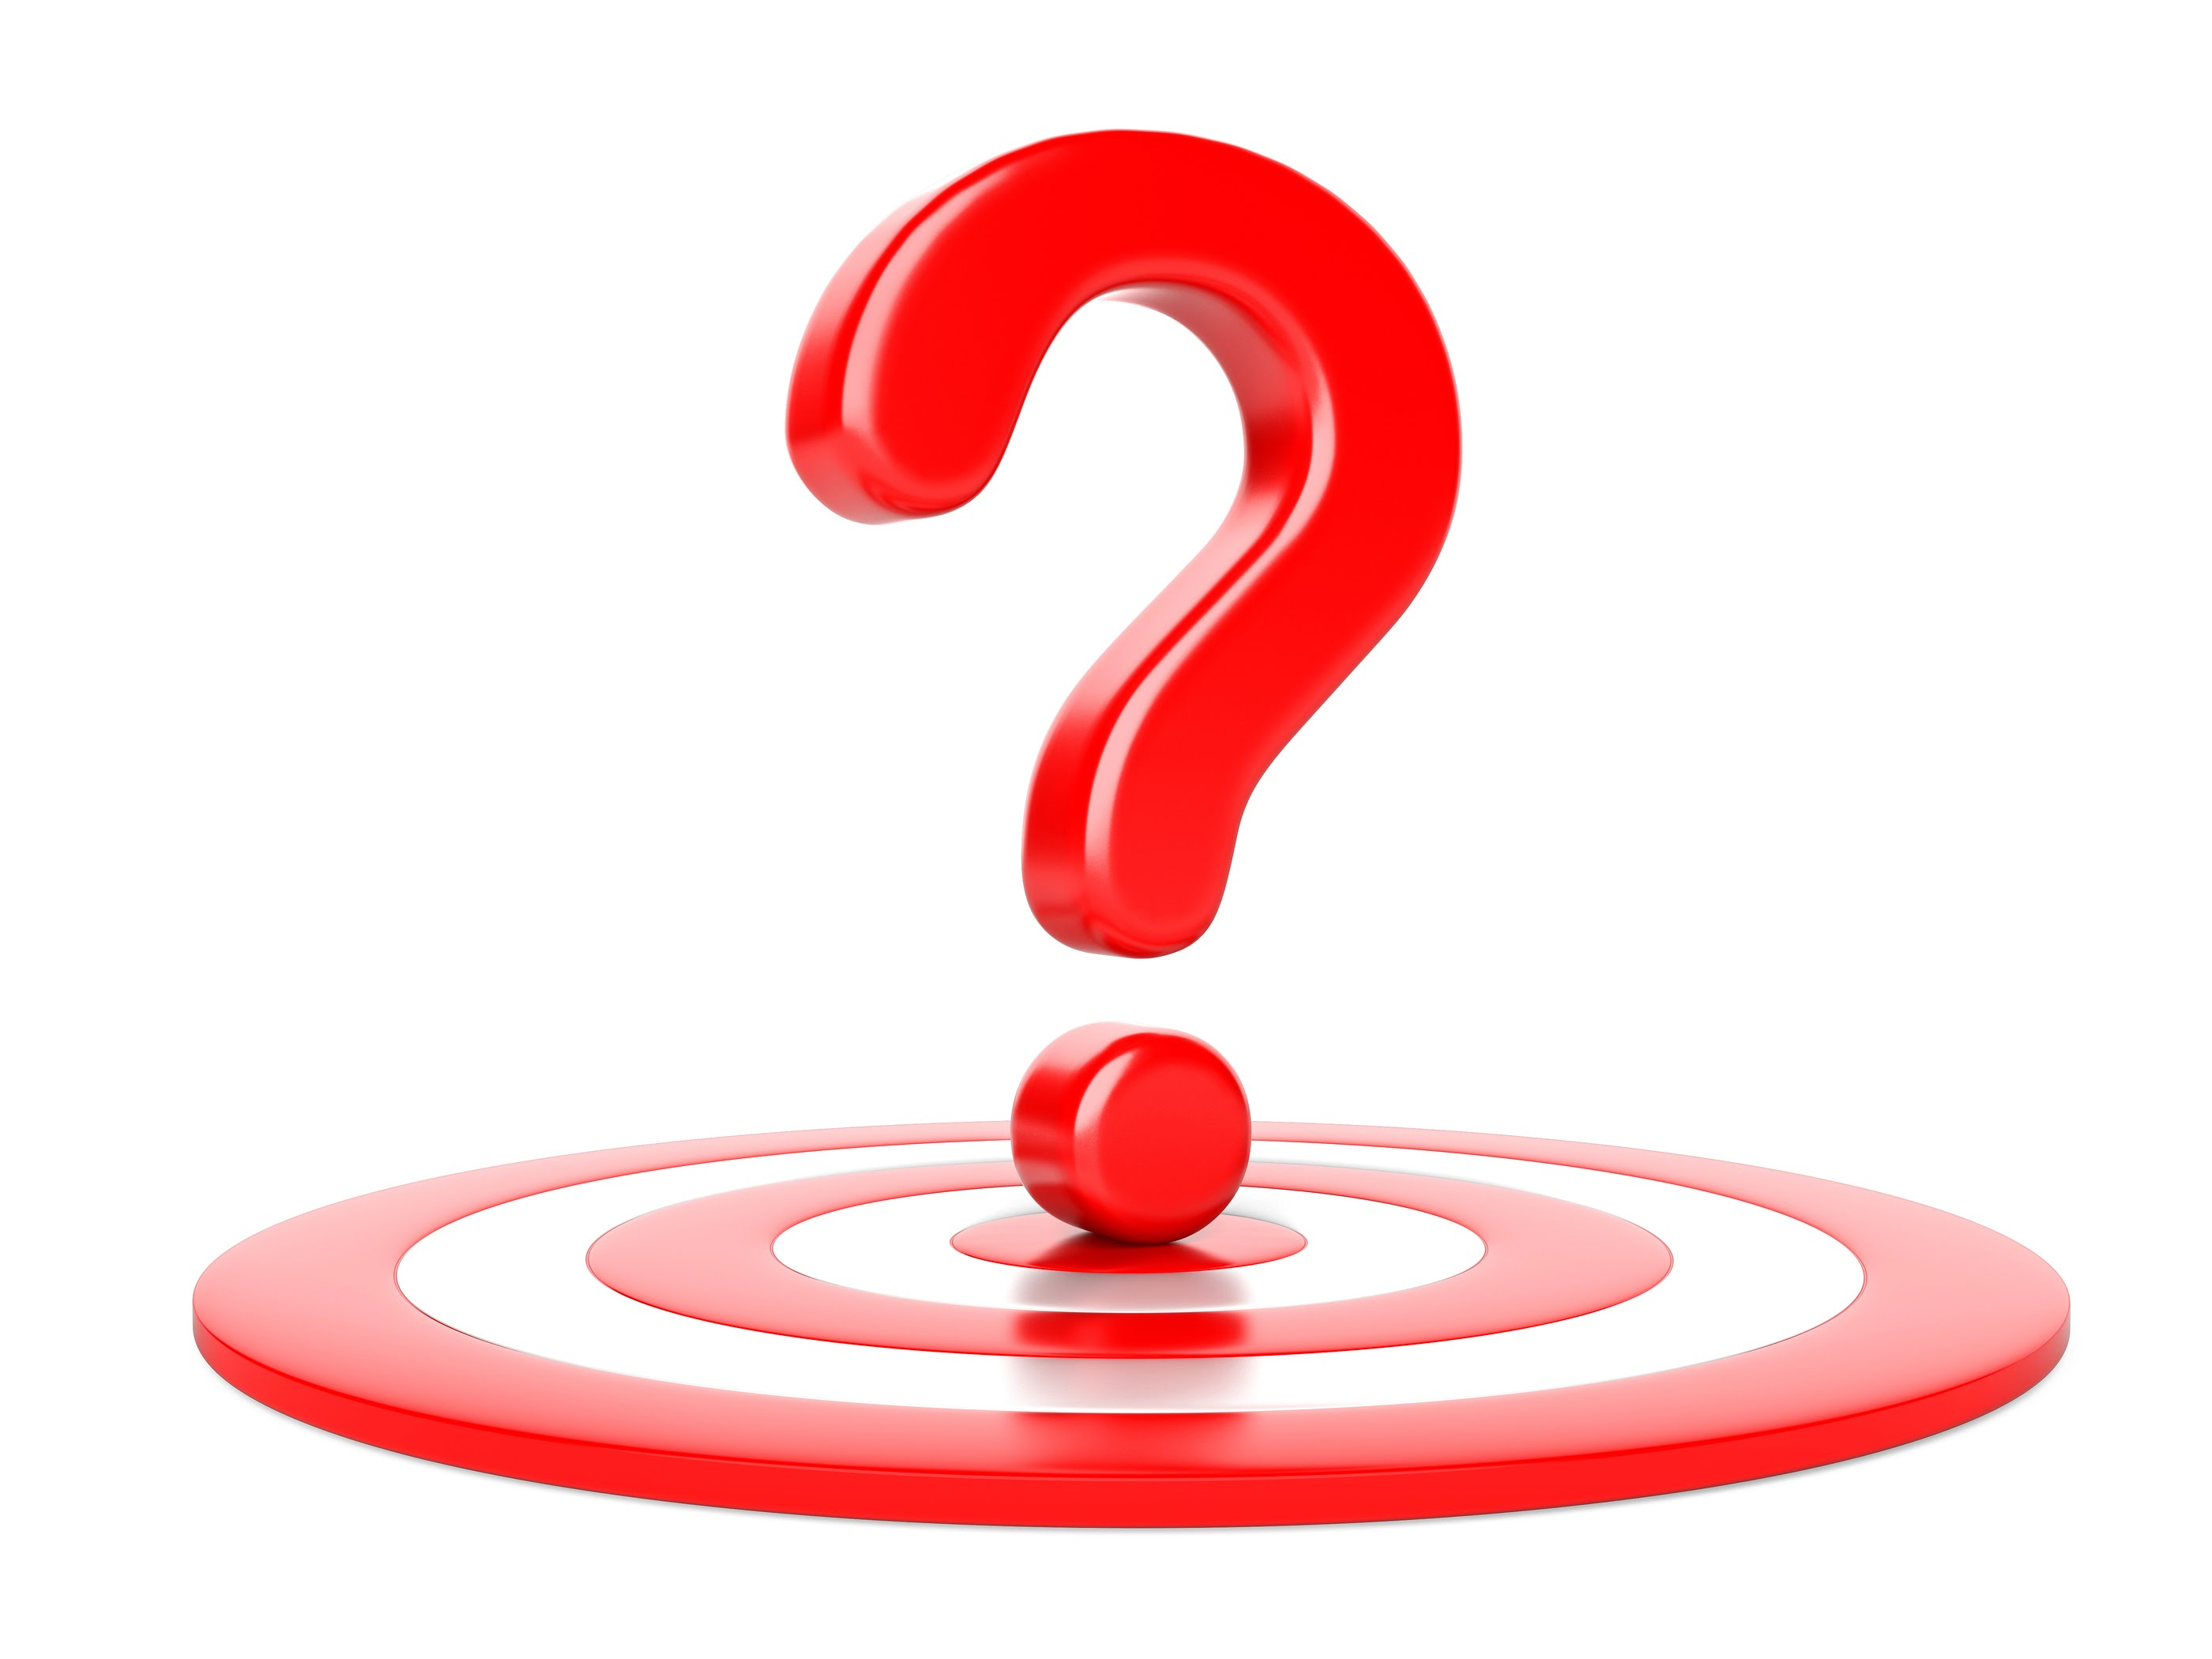 question mark did you know these rules  englishnaija com punctuation clip art free punctuation clip art for free